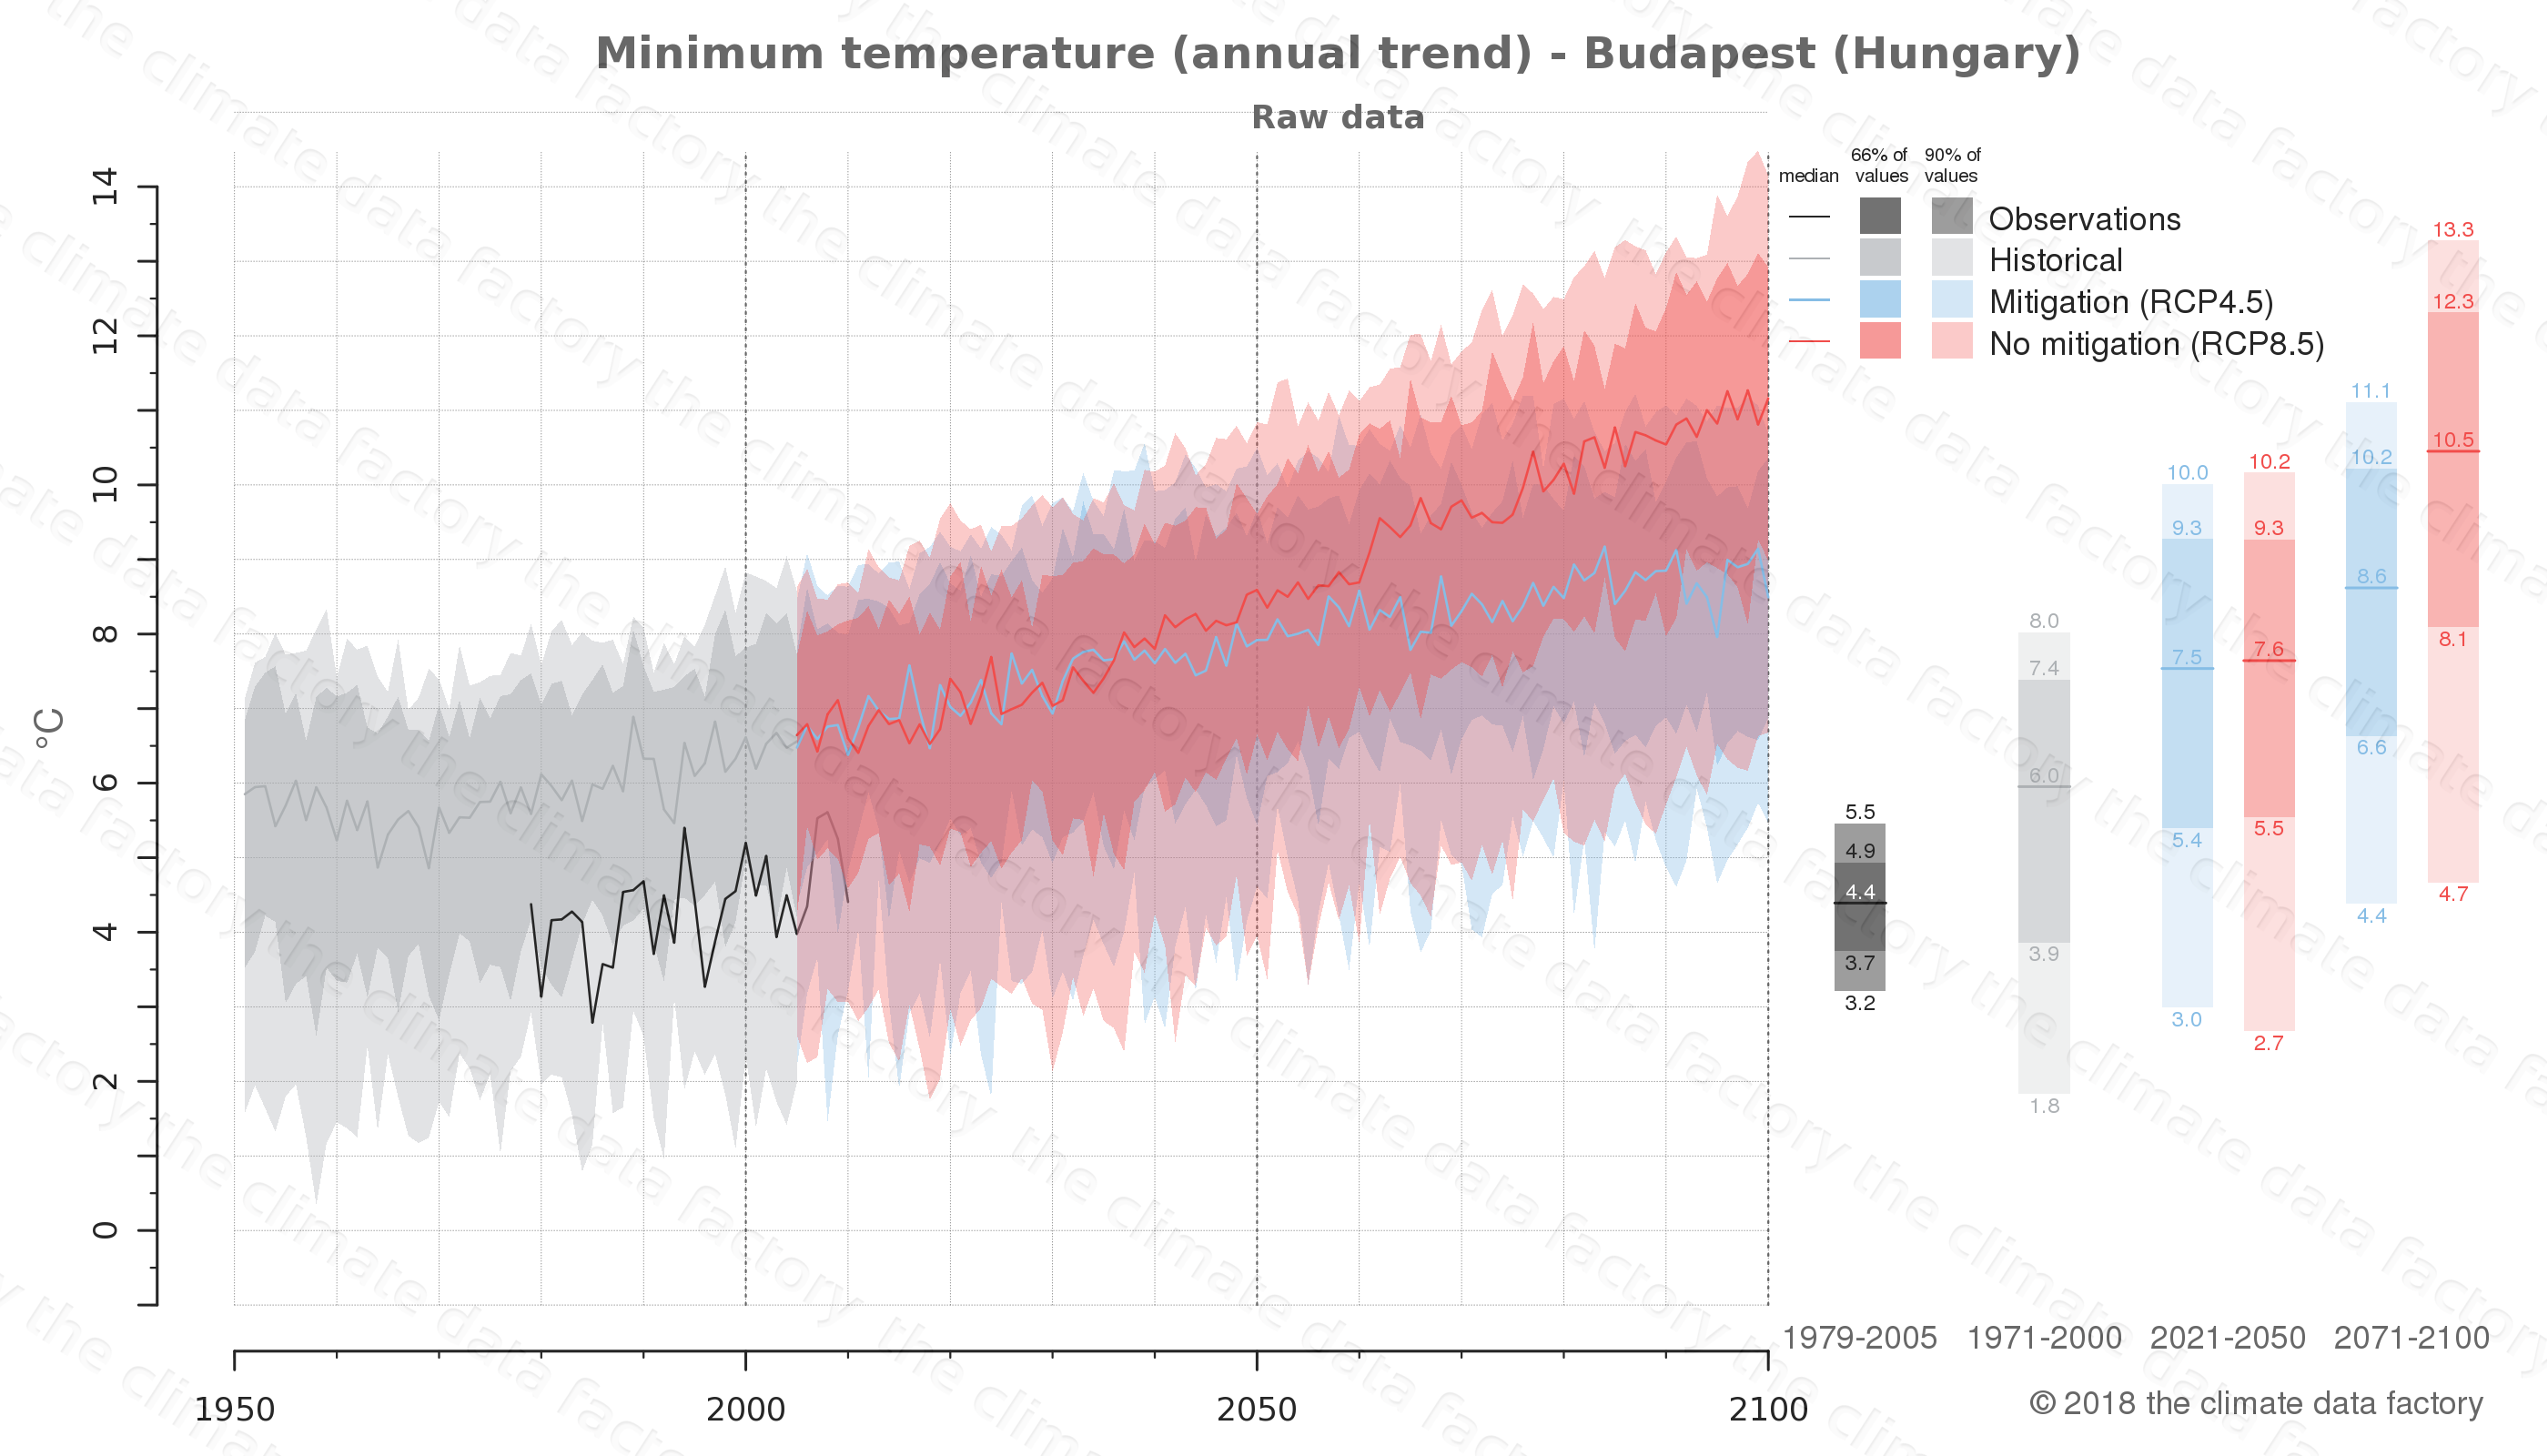 climate change data policy adaptation climate graph city data minimum-temperature budapest hungary